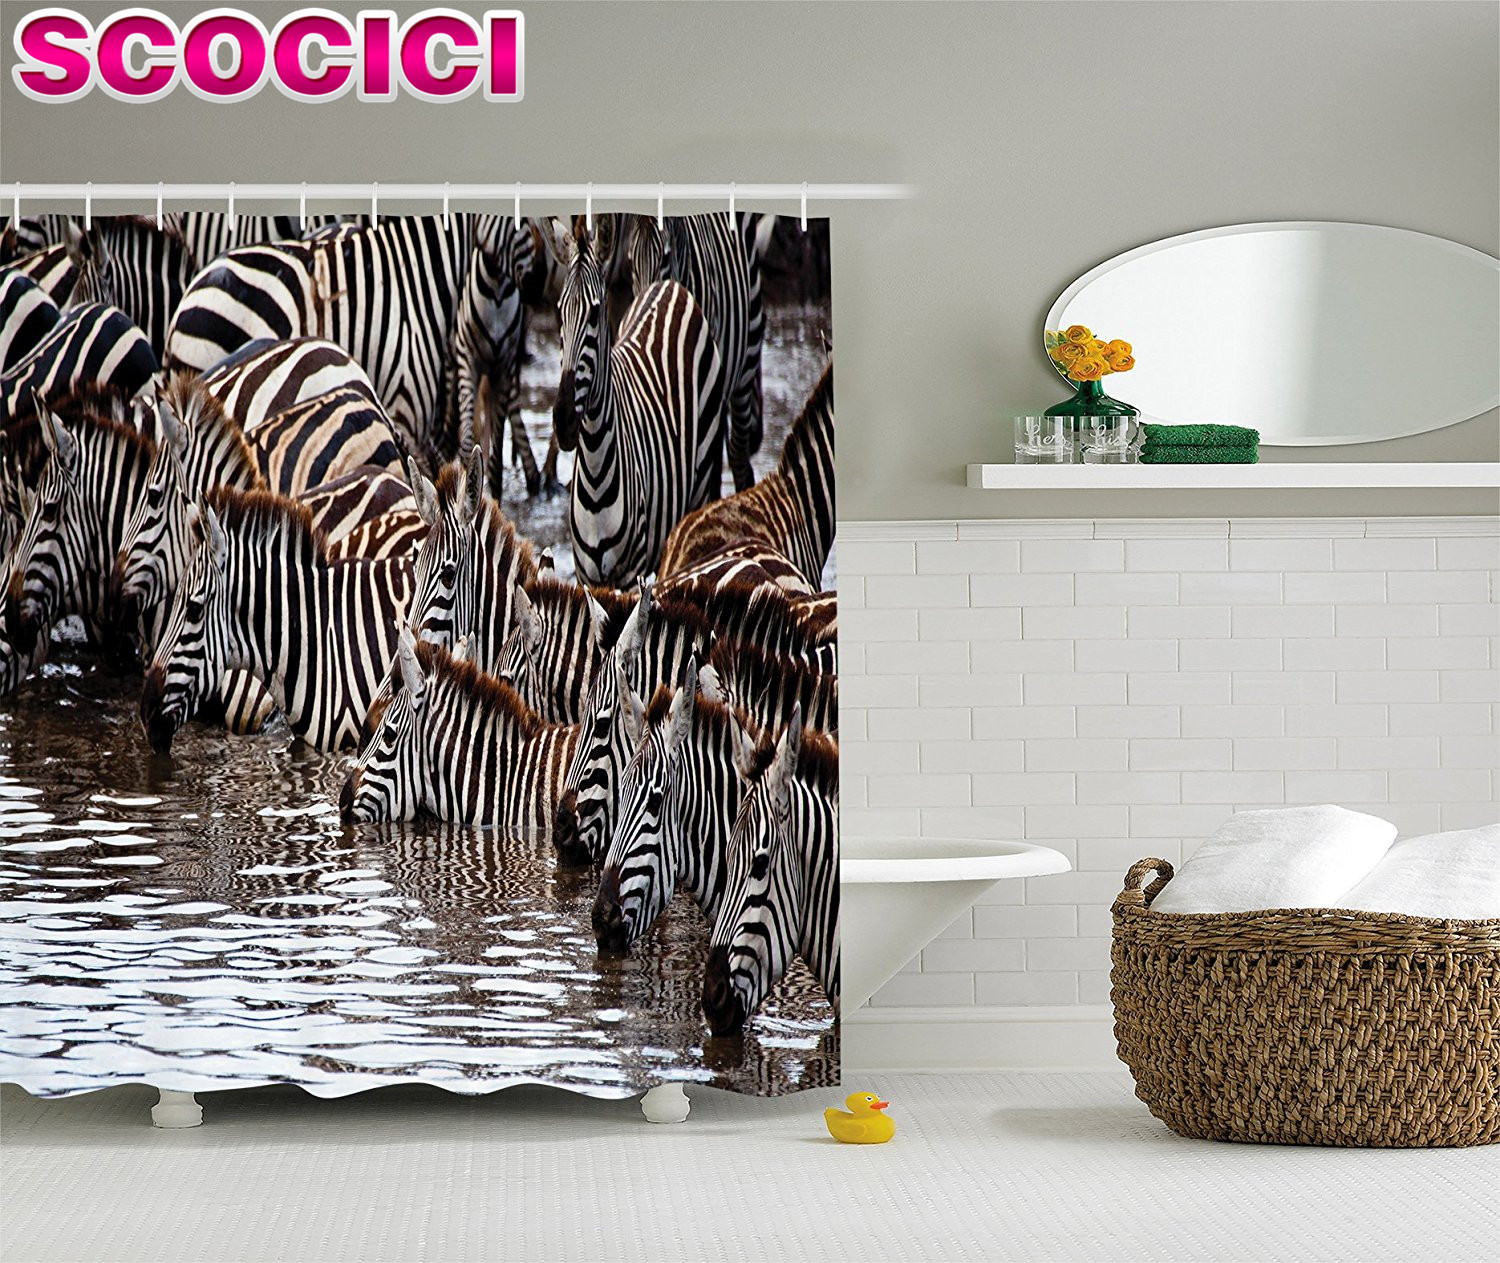 Wildlife Decor Shower Curtain Set Zebras Drinking Water In Tanzania Bathroom Accessories China Mainland